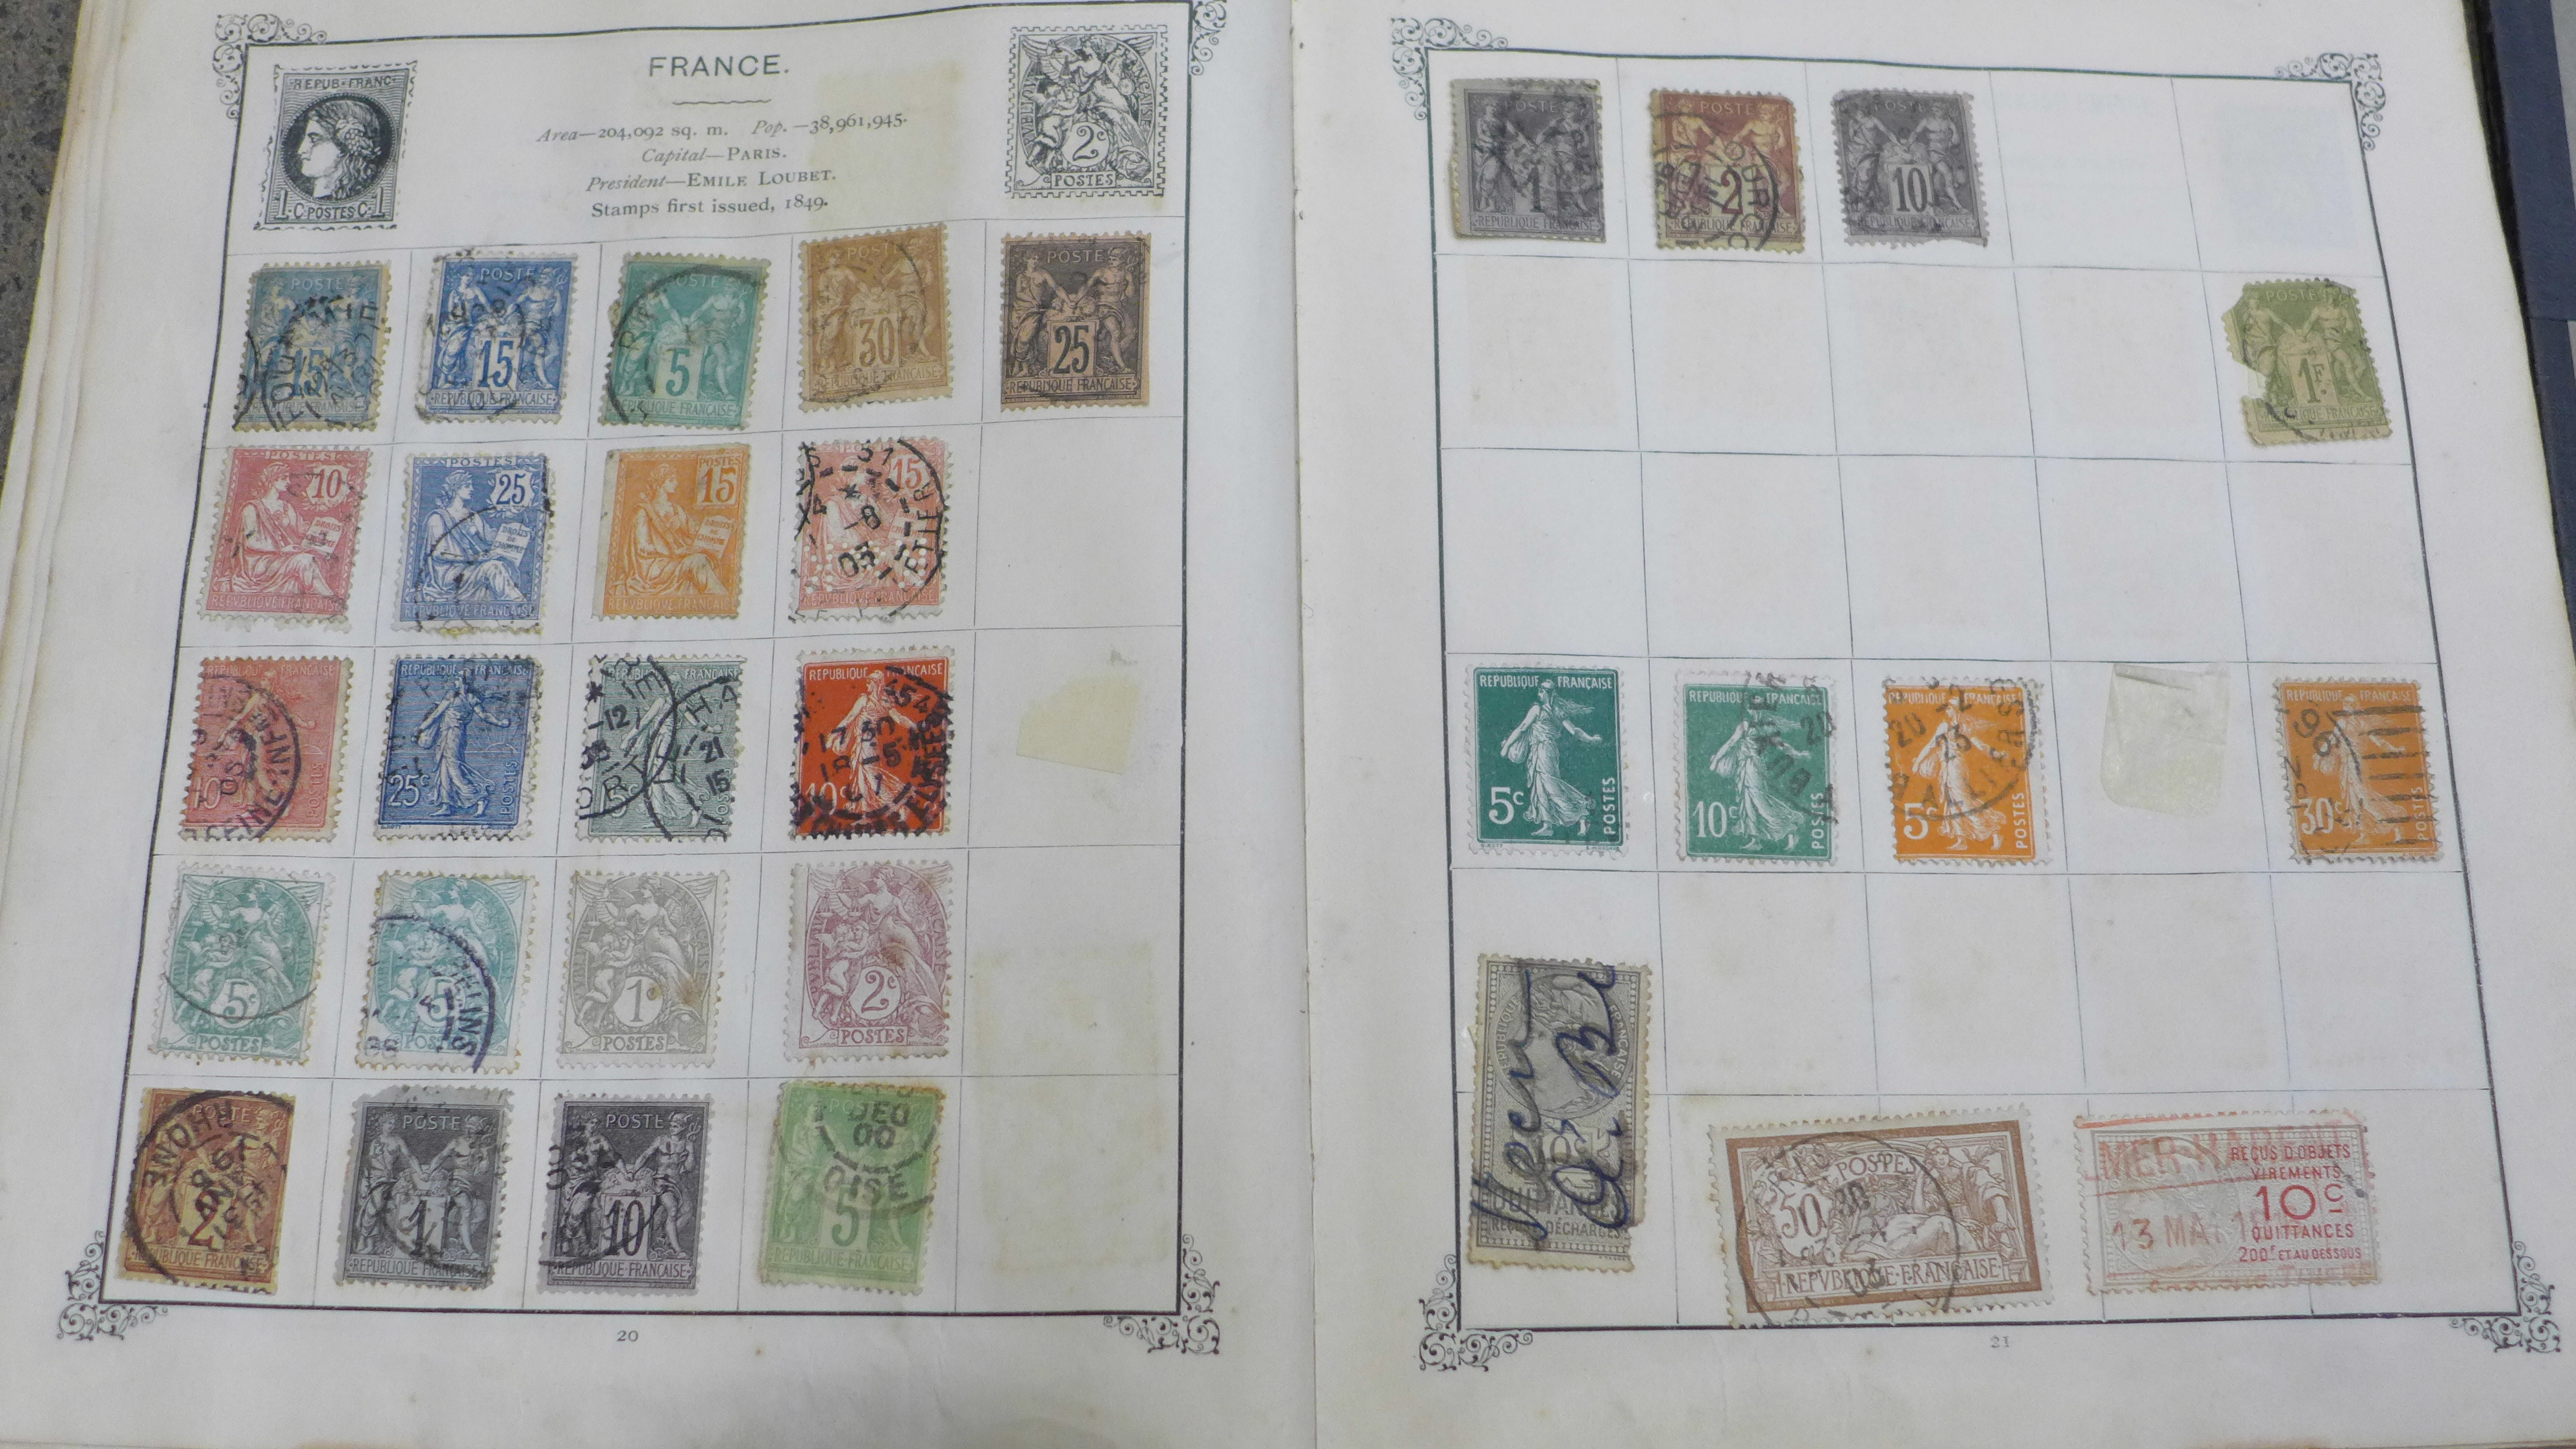 Lot 658 - A collection of stamps including a penny black, a/f,